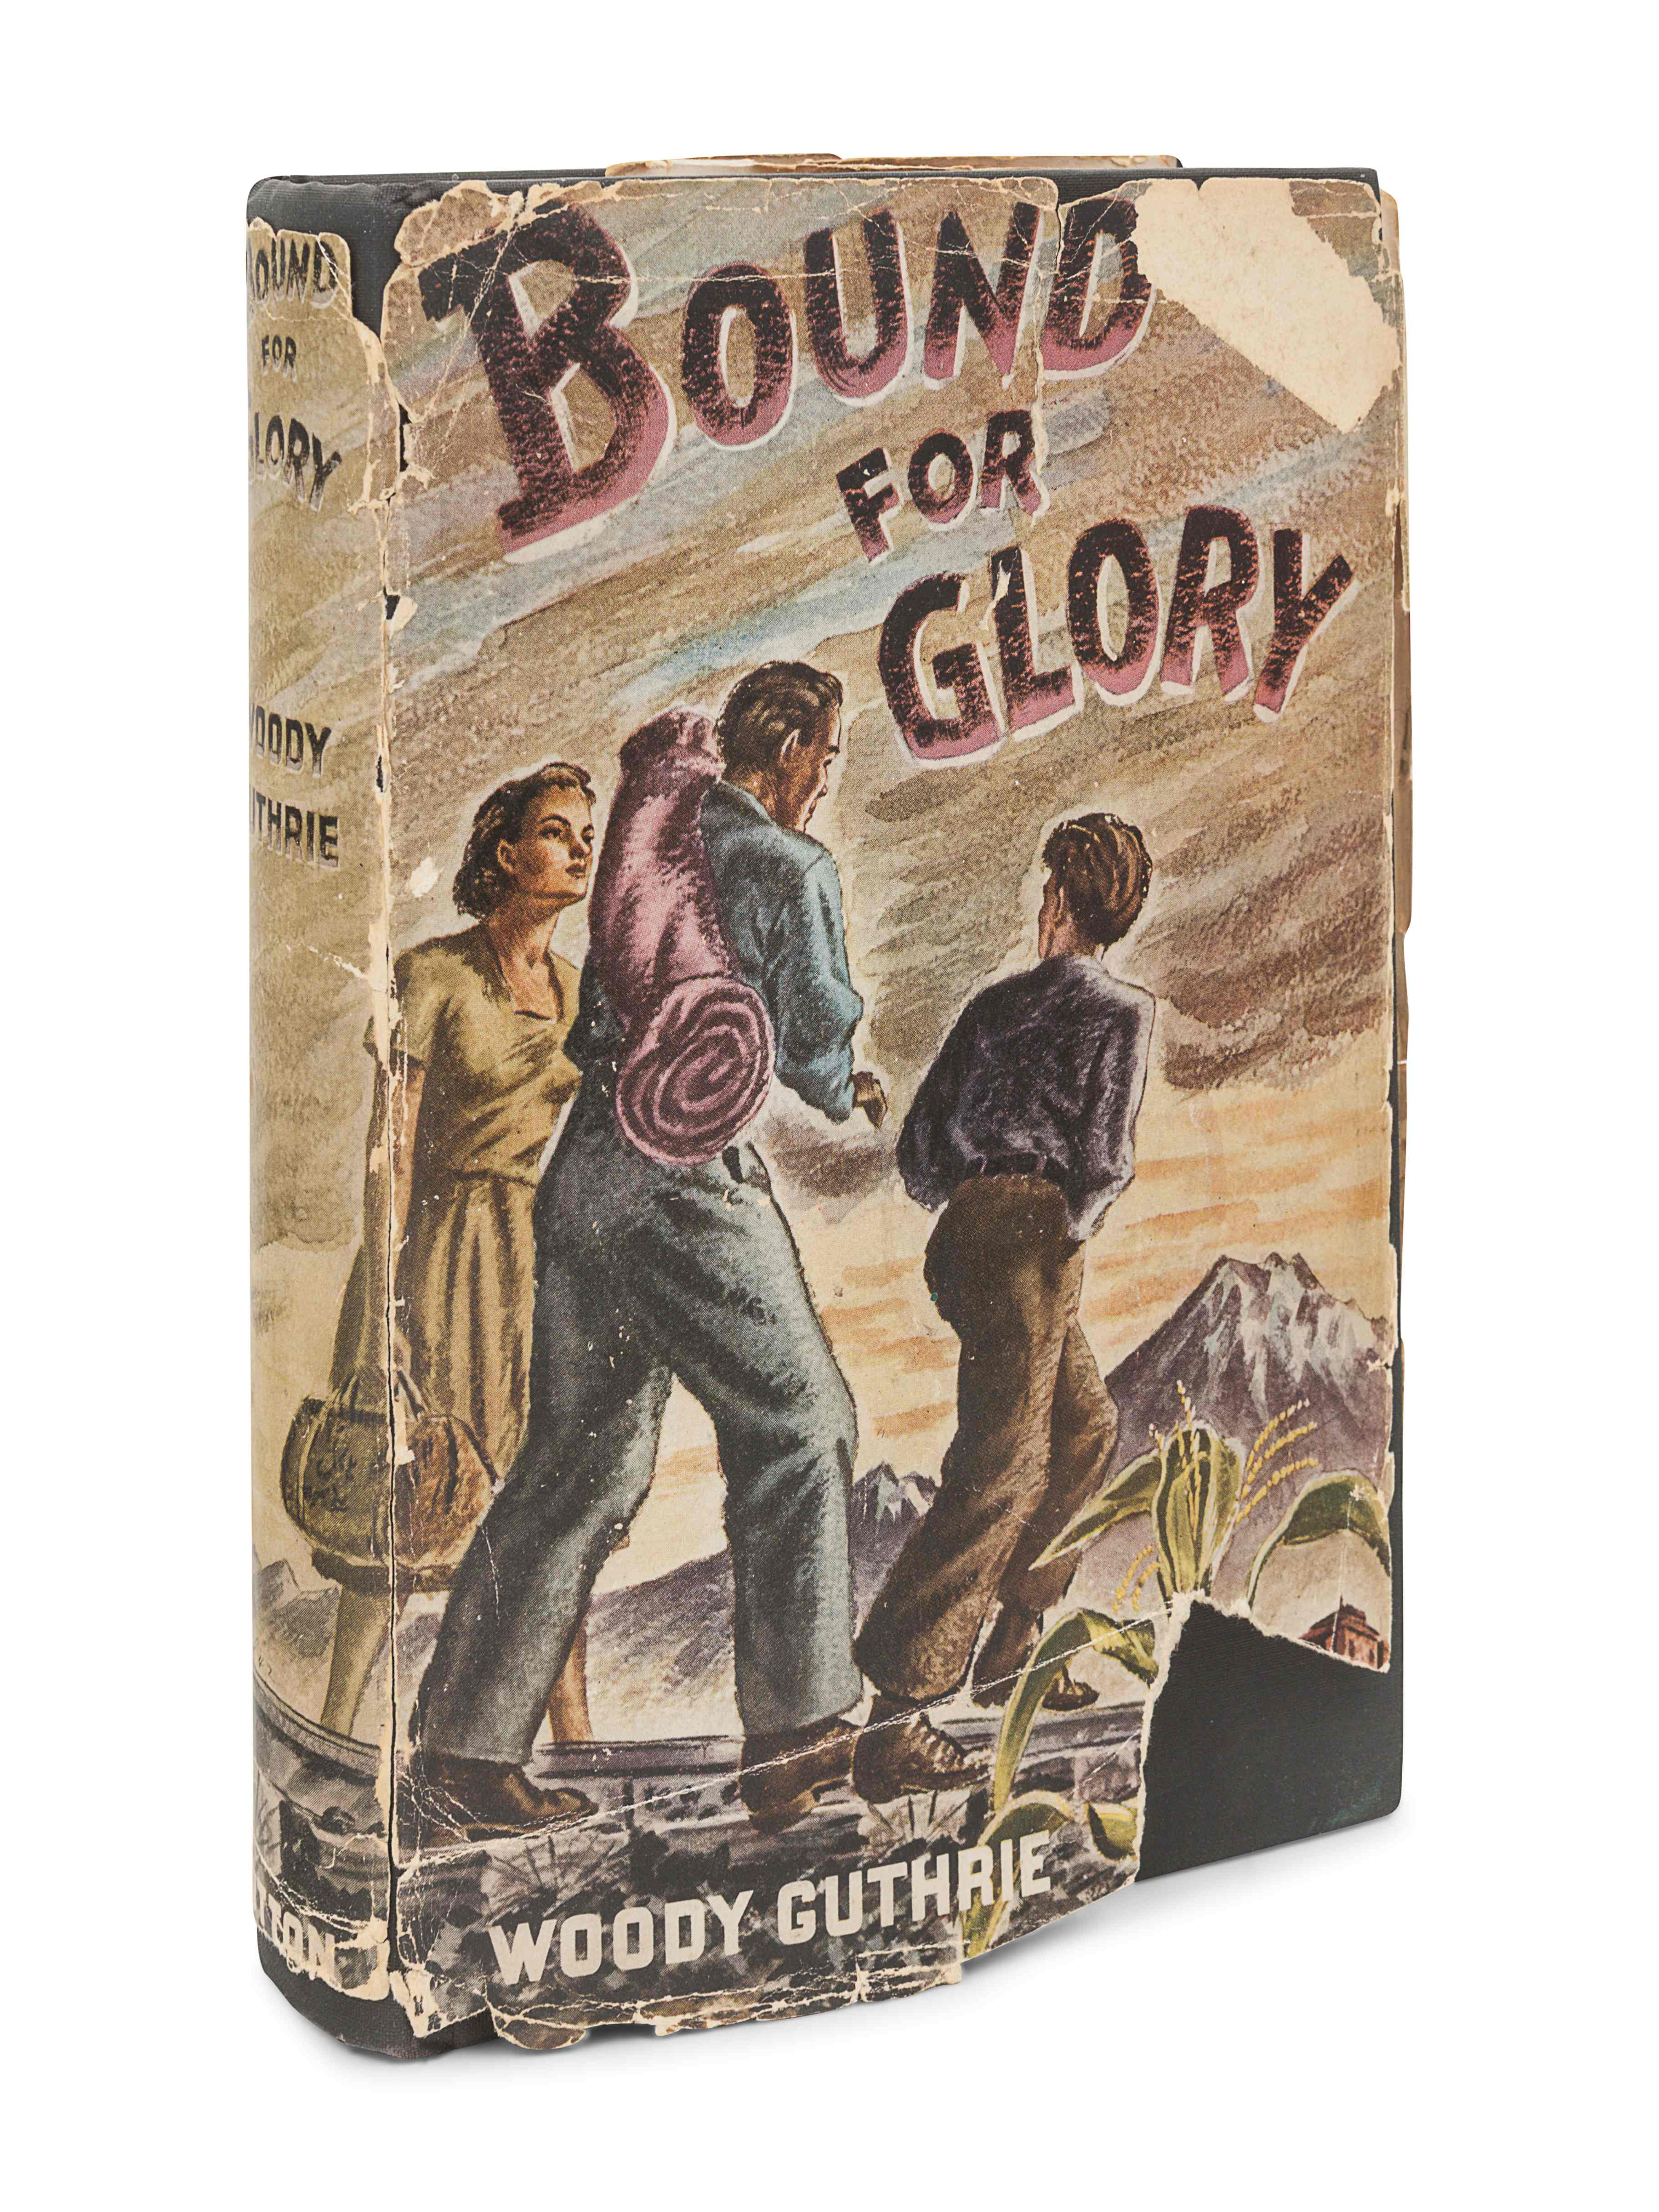 GUTHRIE, Woody (1912-1967). Bound For Glory. New York: E.P. Dutton & Co., 1943. - Image 3 of 3